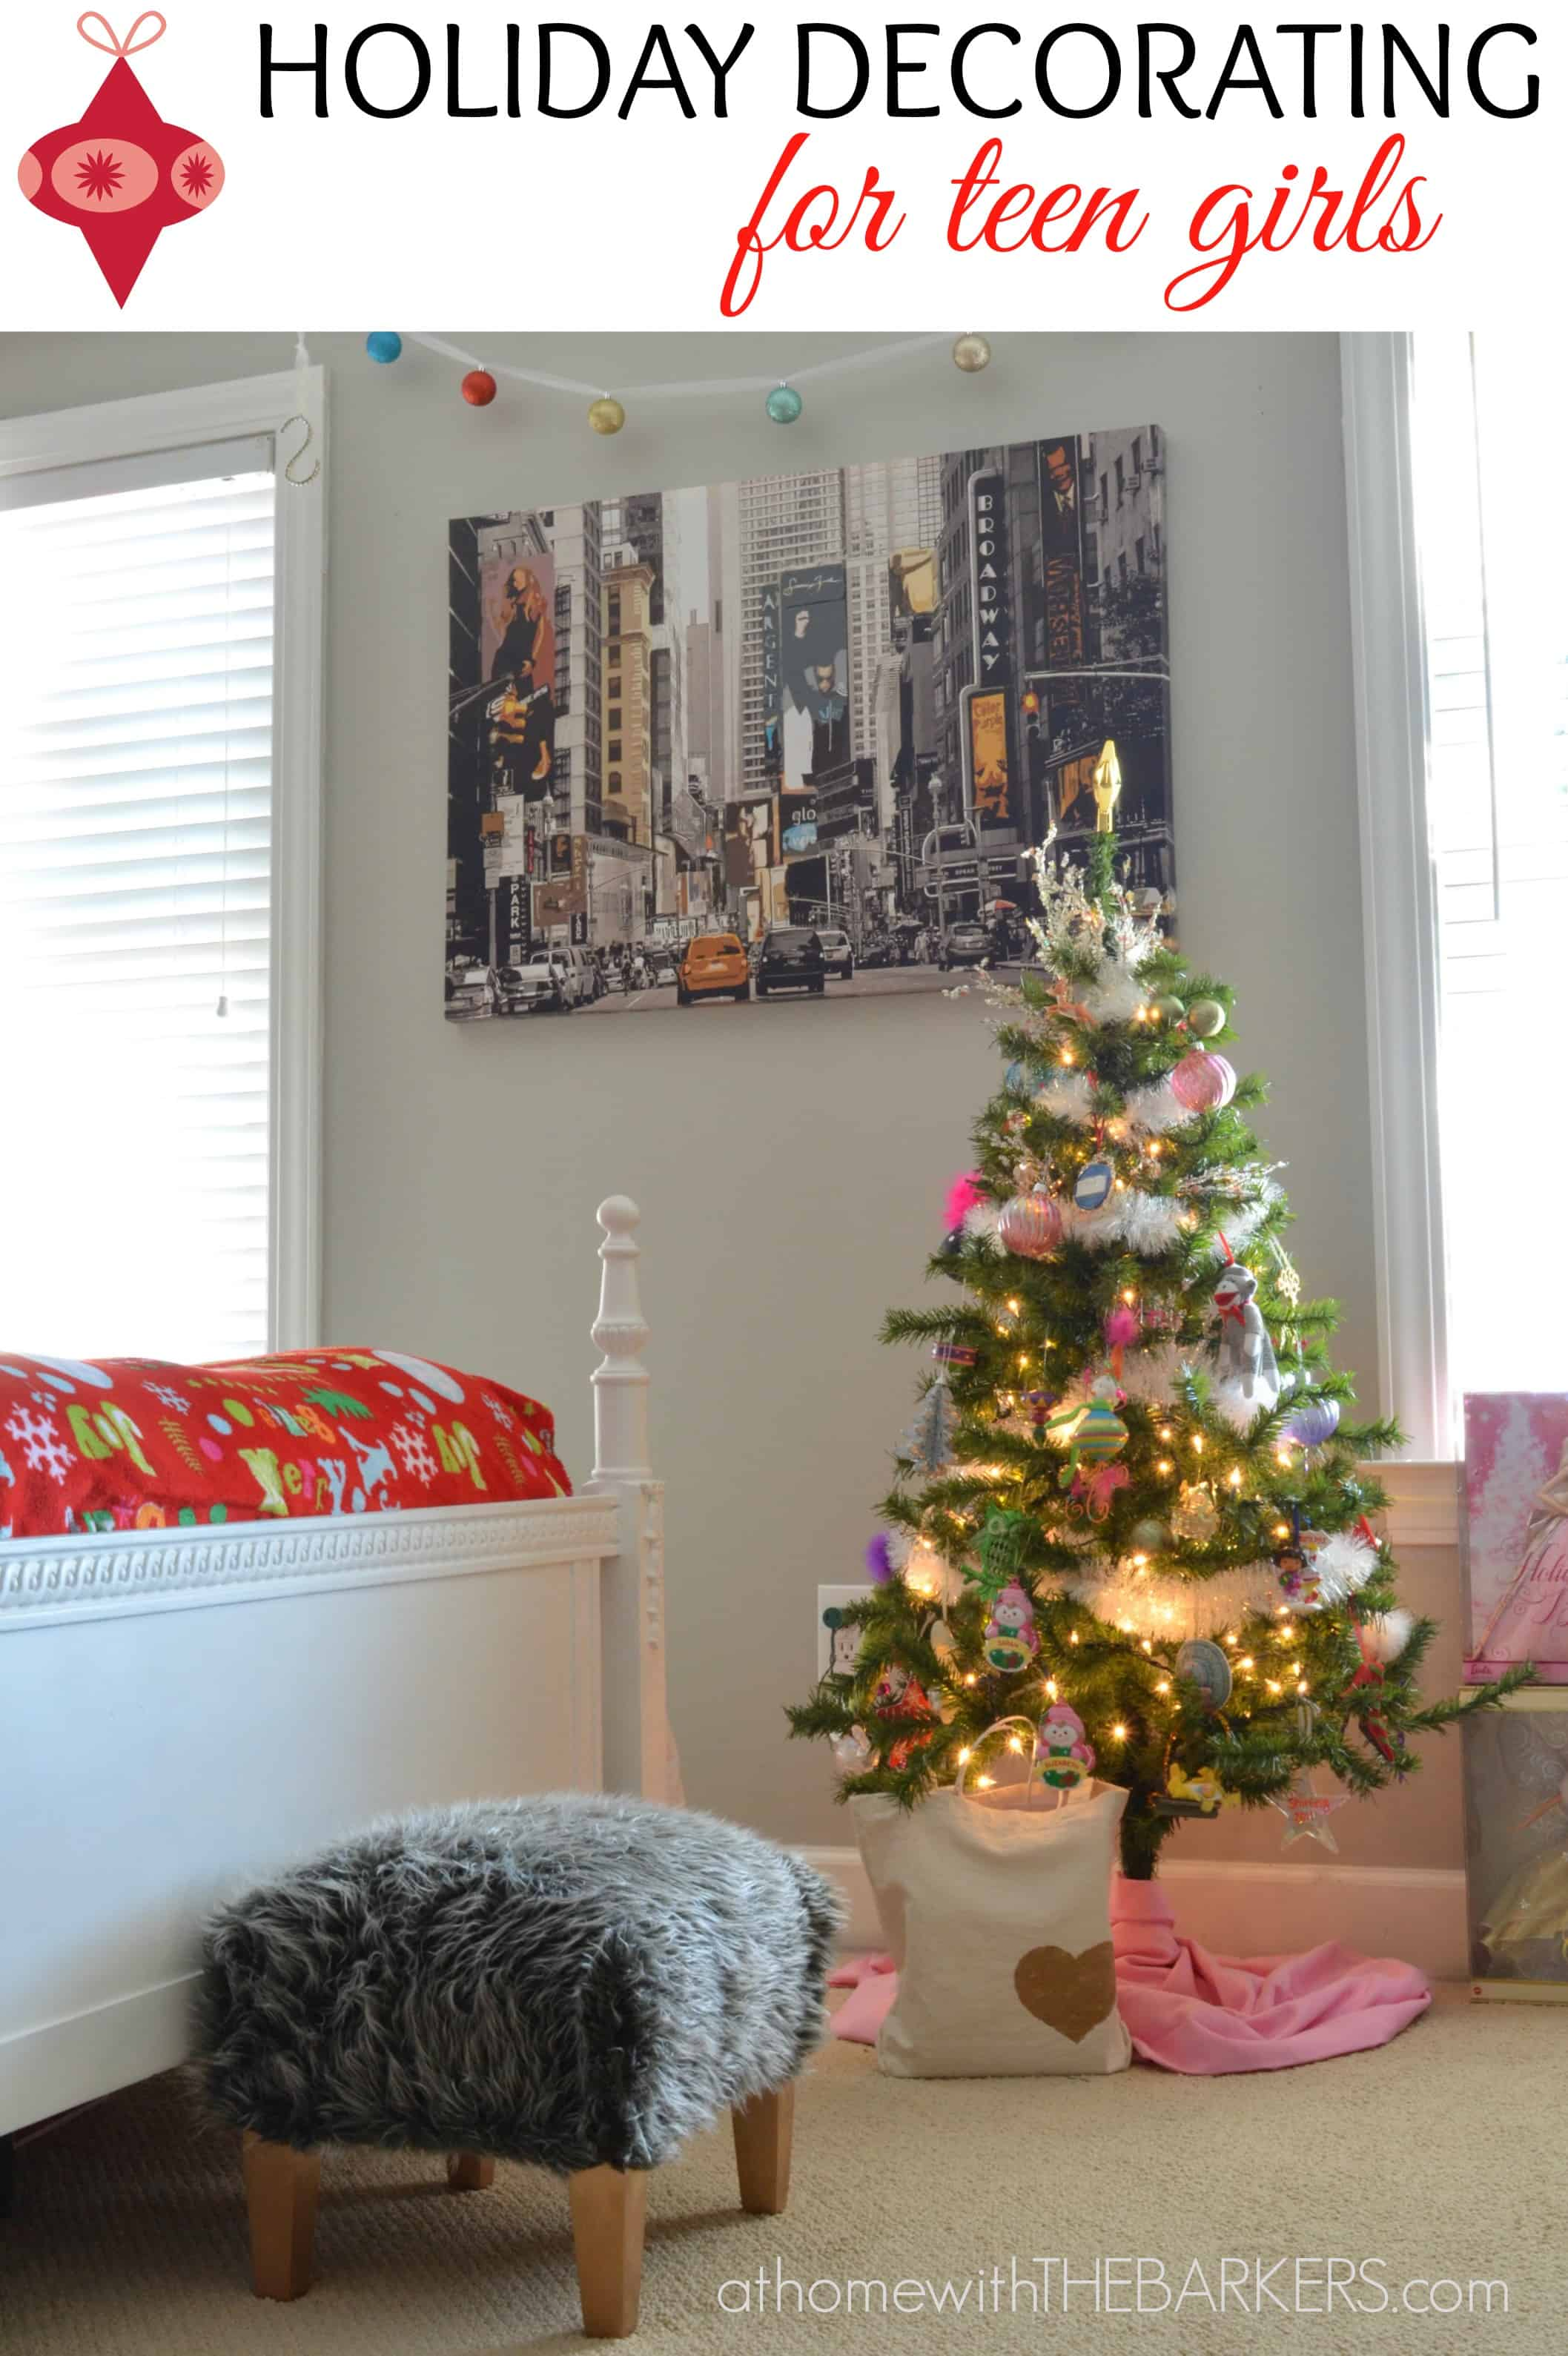 Holiday Decorating For Teen Girls At Home With The Barkers